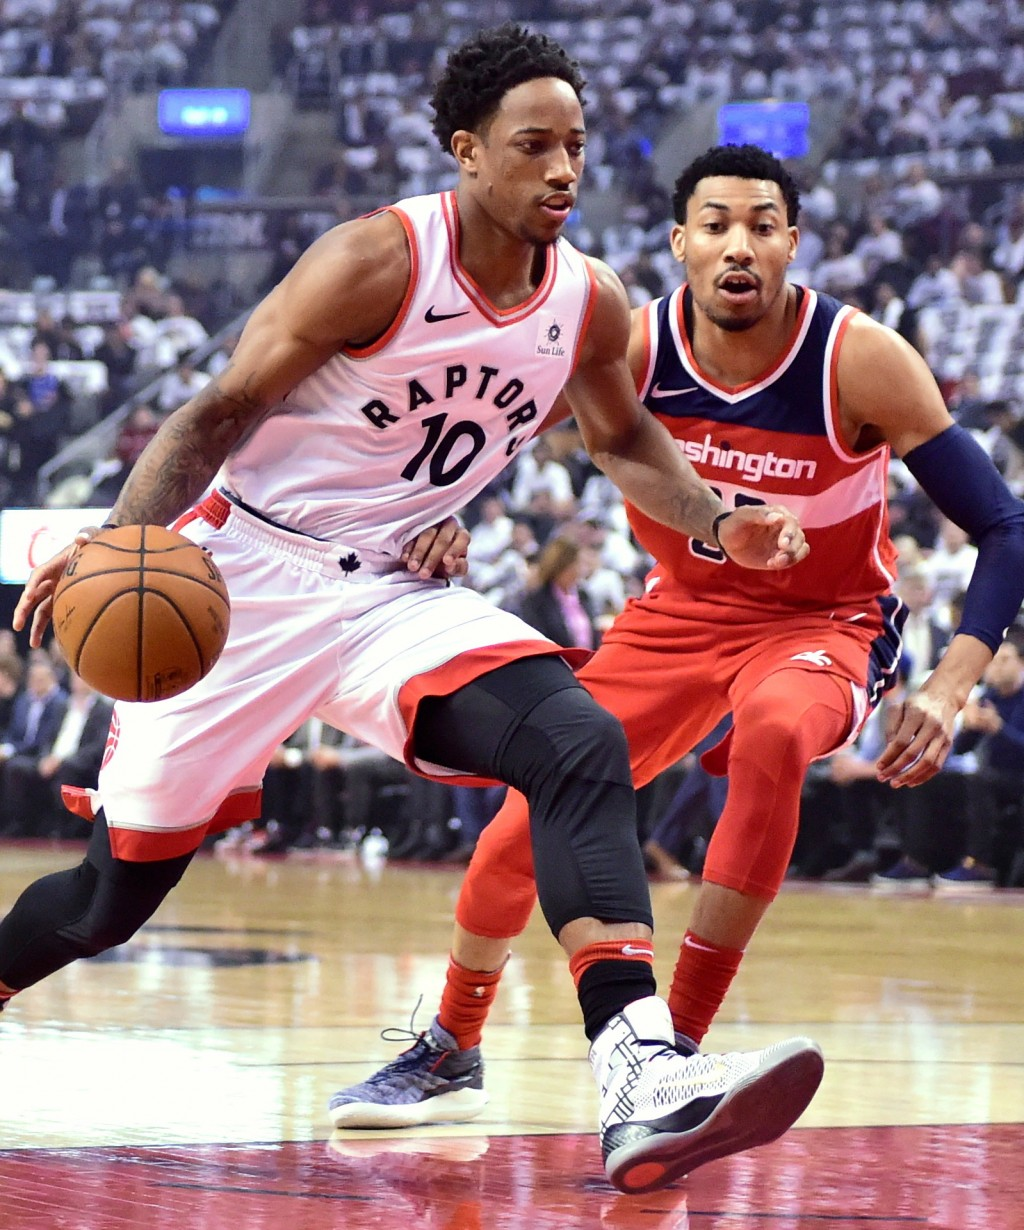 Toronto Raptors' DeMar DeRozan drives against Washington Wizards Otto Porter Jr. during the first half of Game 5 of an NBA basketball first-round play...